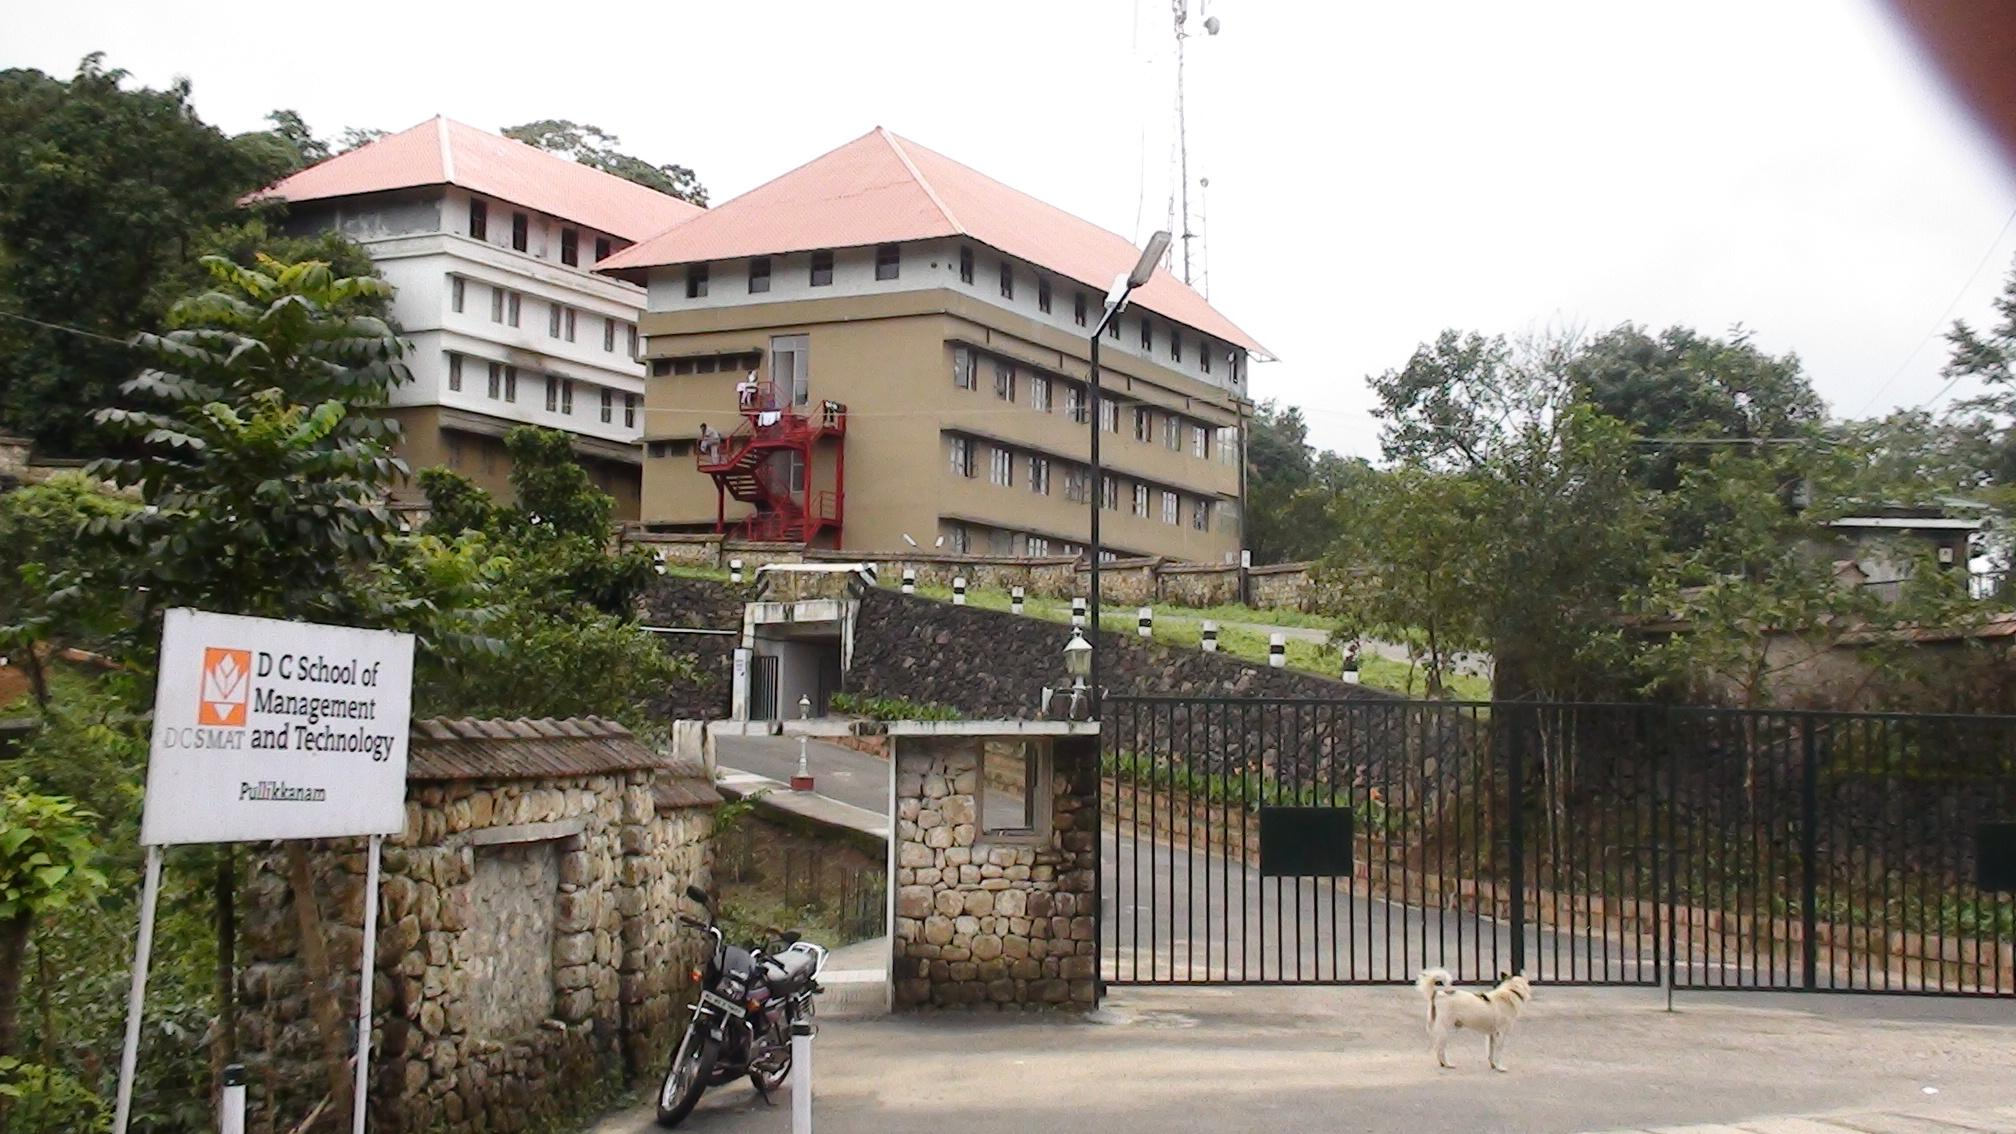 DC School of Management and Technology in Kerala